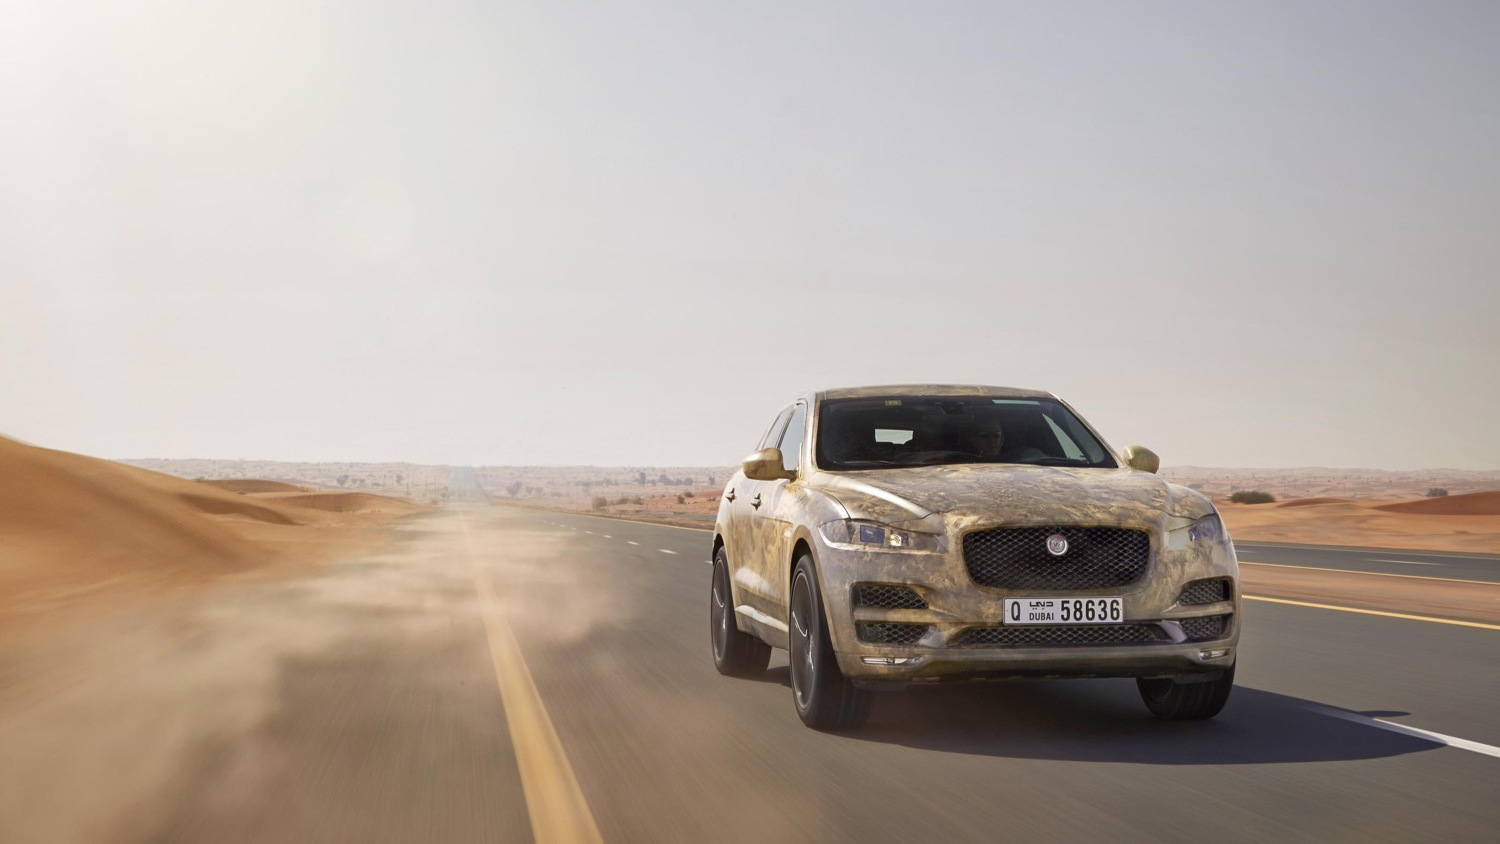 Jaguar F-Pace pre-production prototype